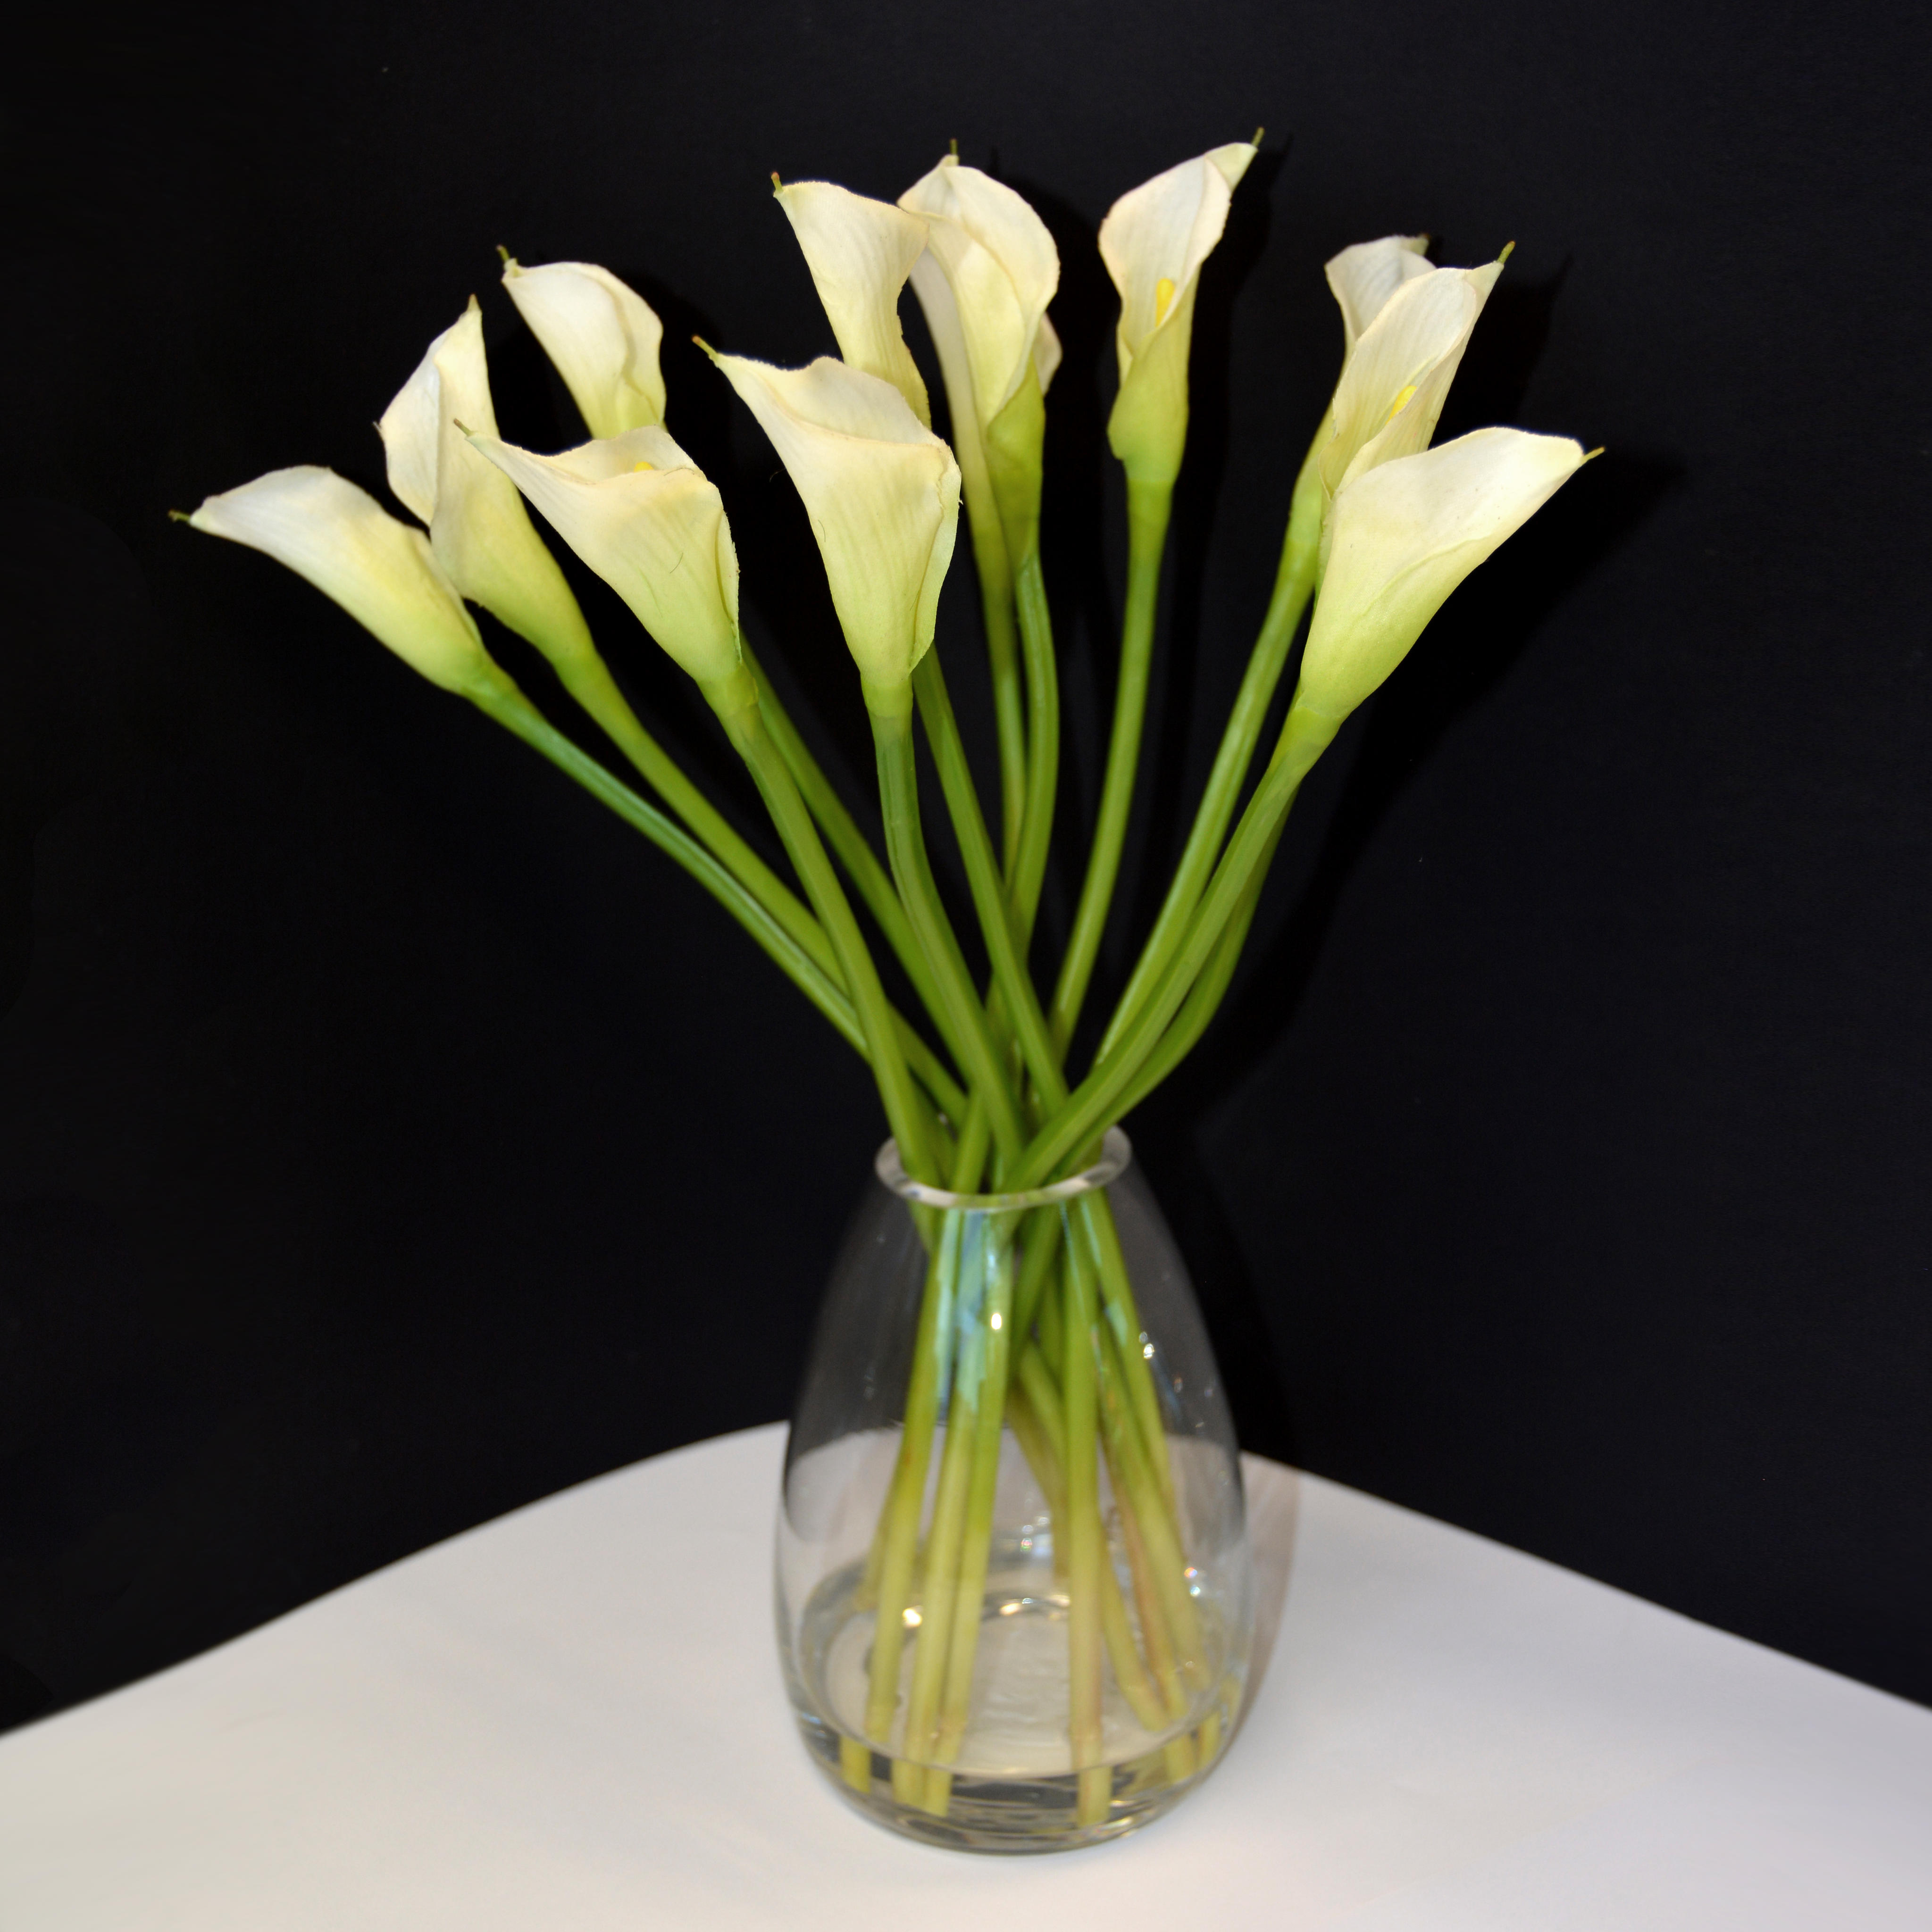 Artificial Flowers Highest Quality Uk Wide Delivery